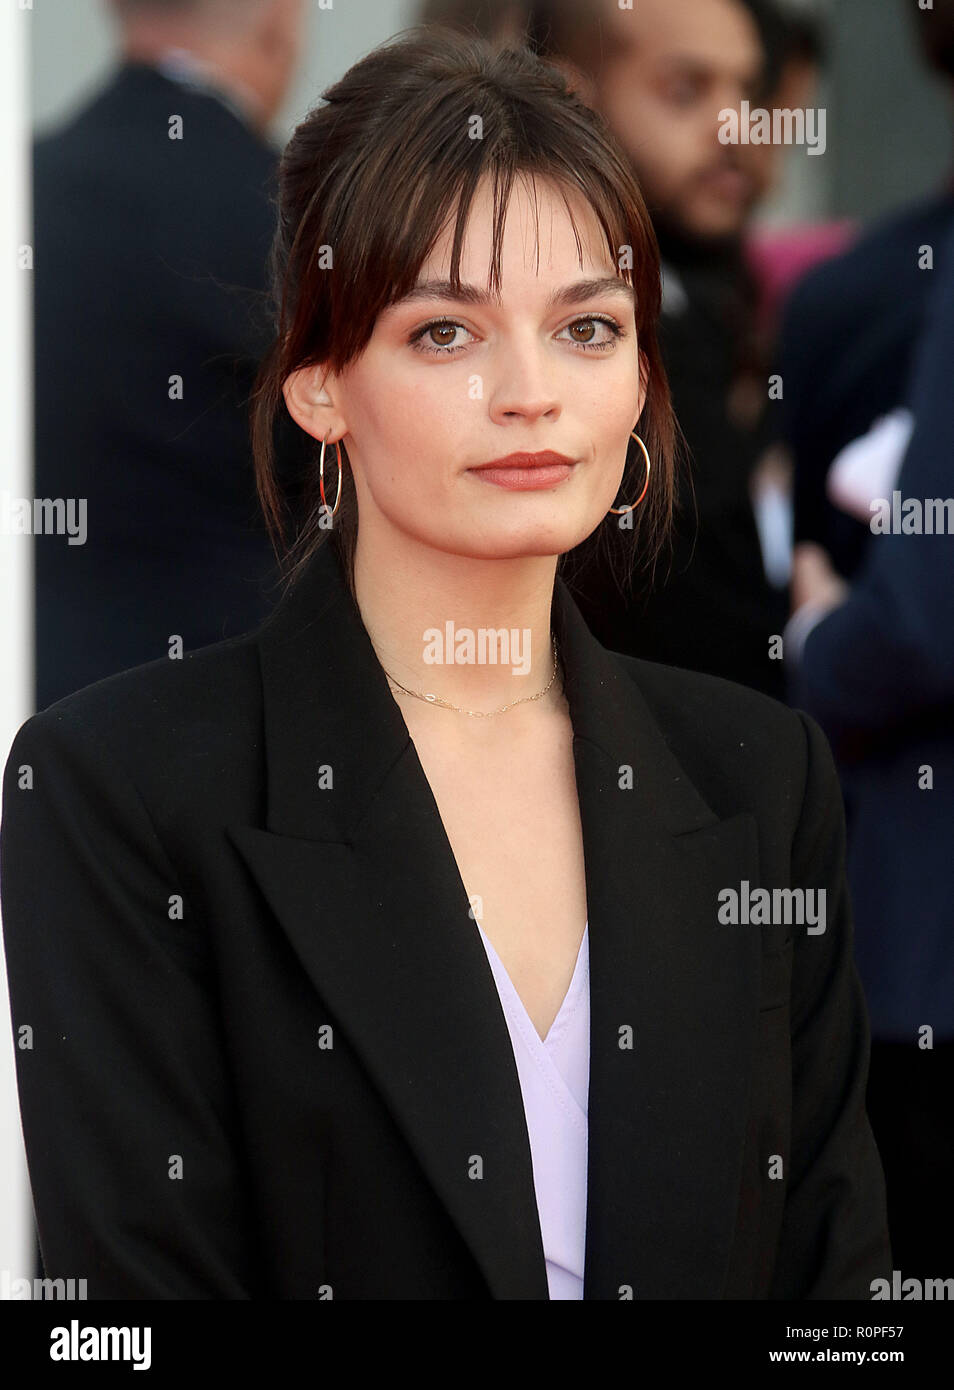 Sep 13, 2018 - Emma Mackey attending The World Premiere Of ...